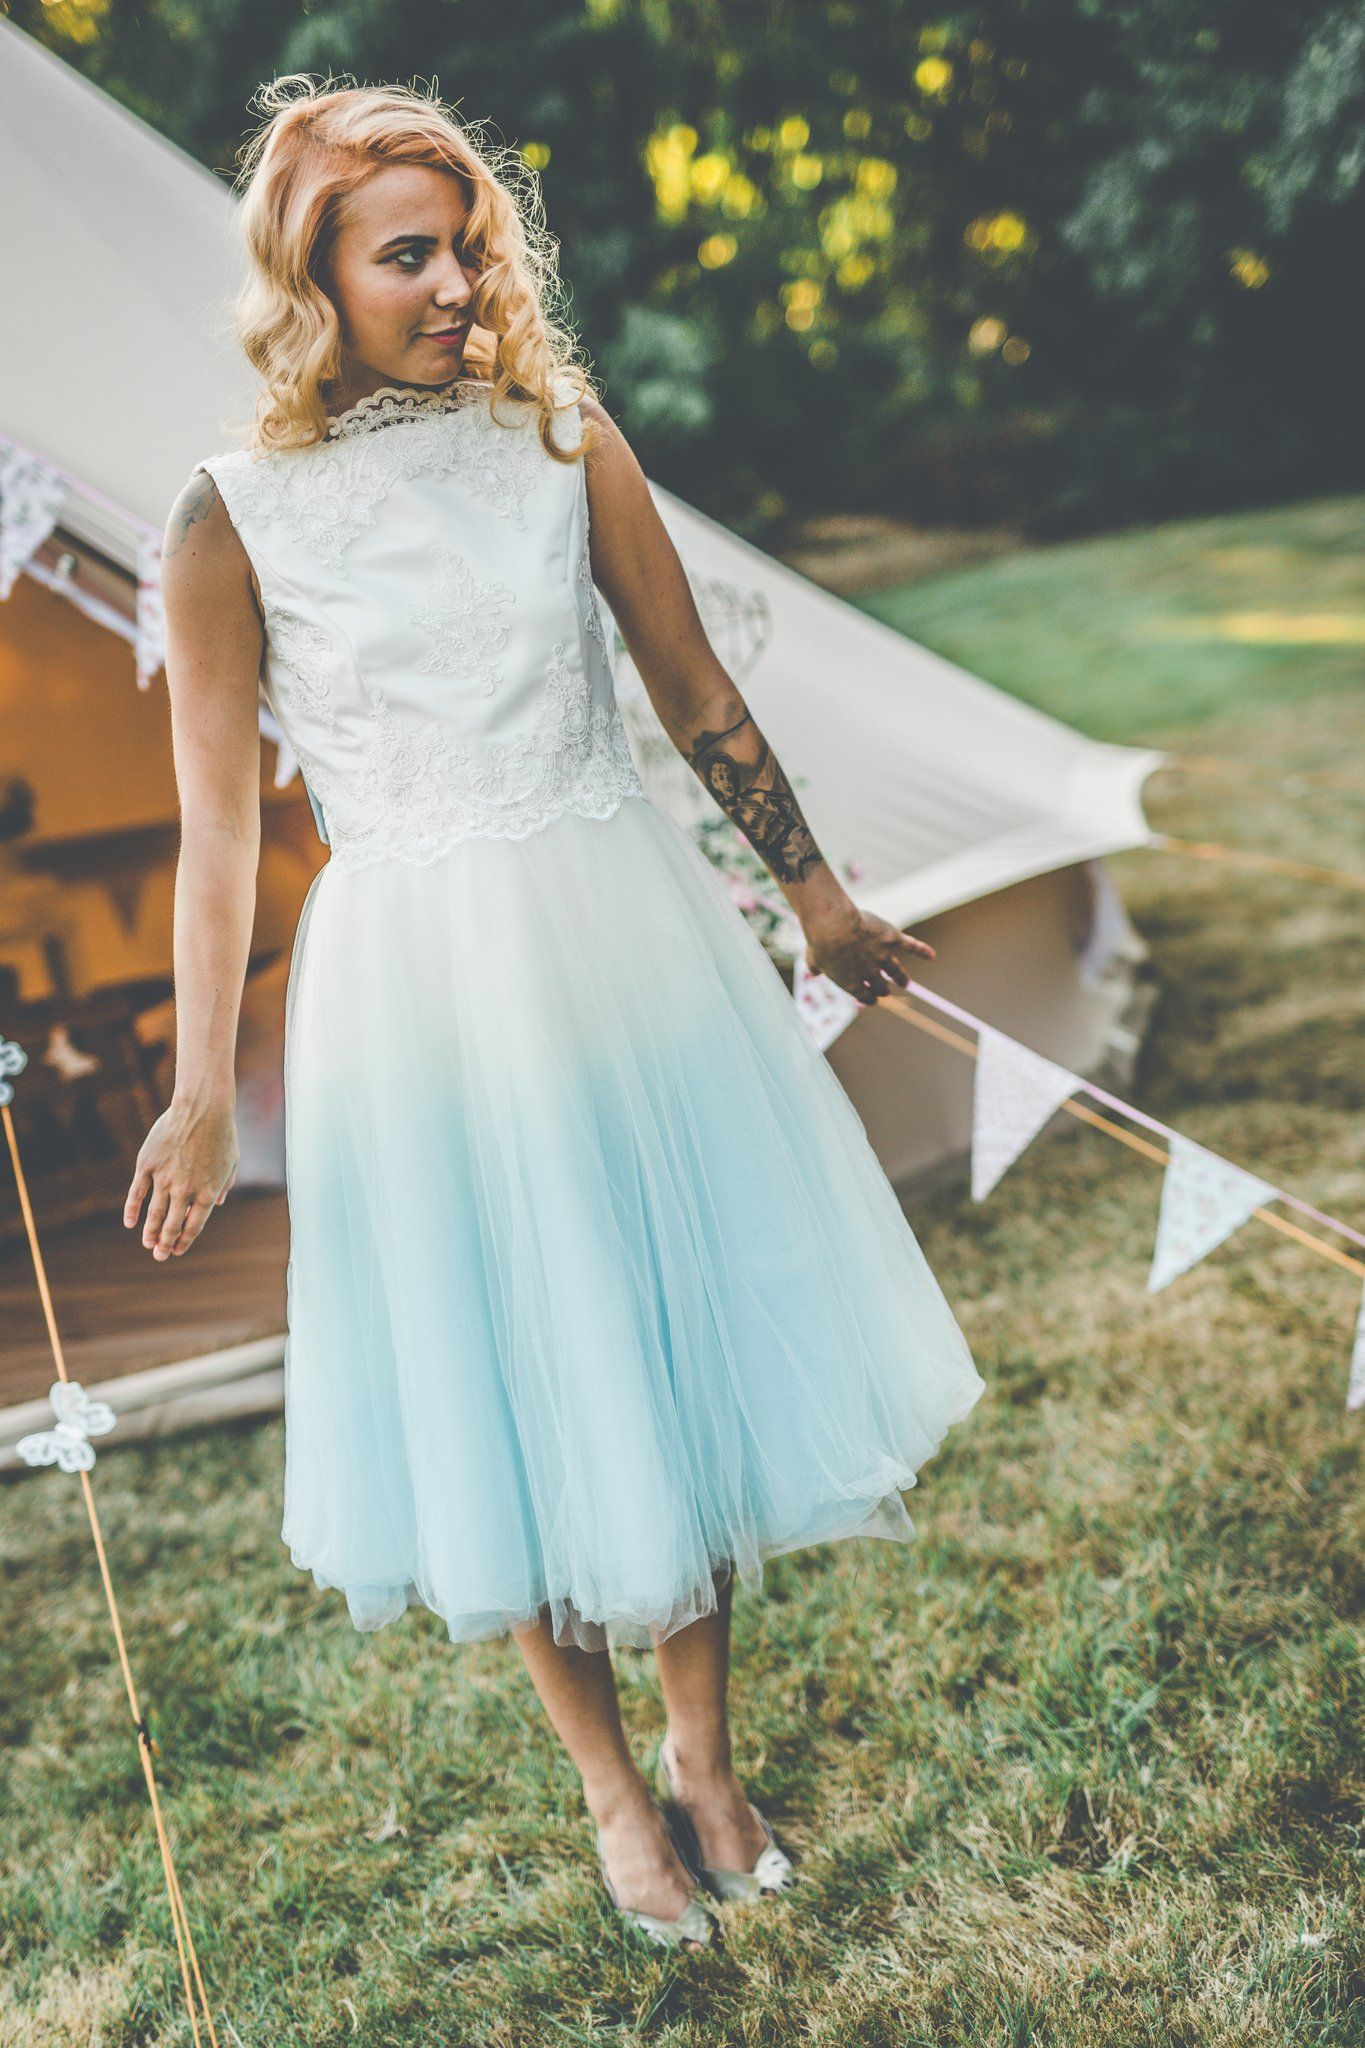 Dip dye 1950s vintage style wedding dress. Unique Dip dyed wedding ...